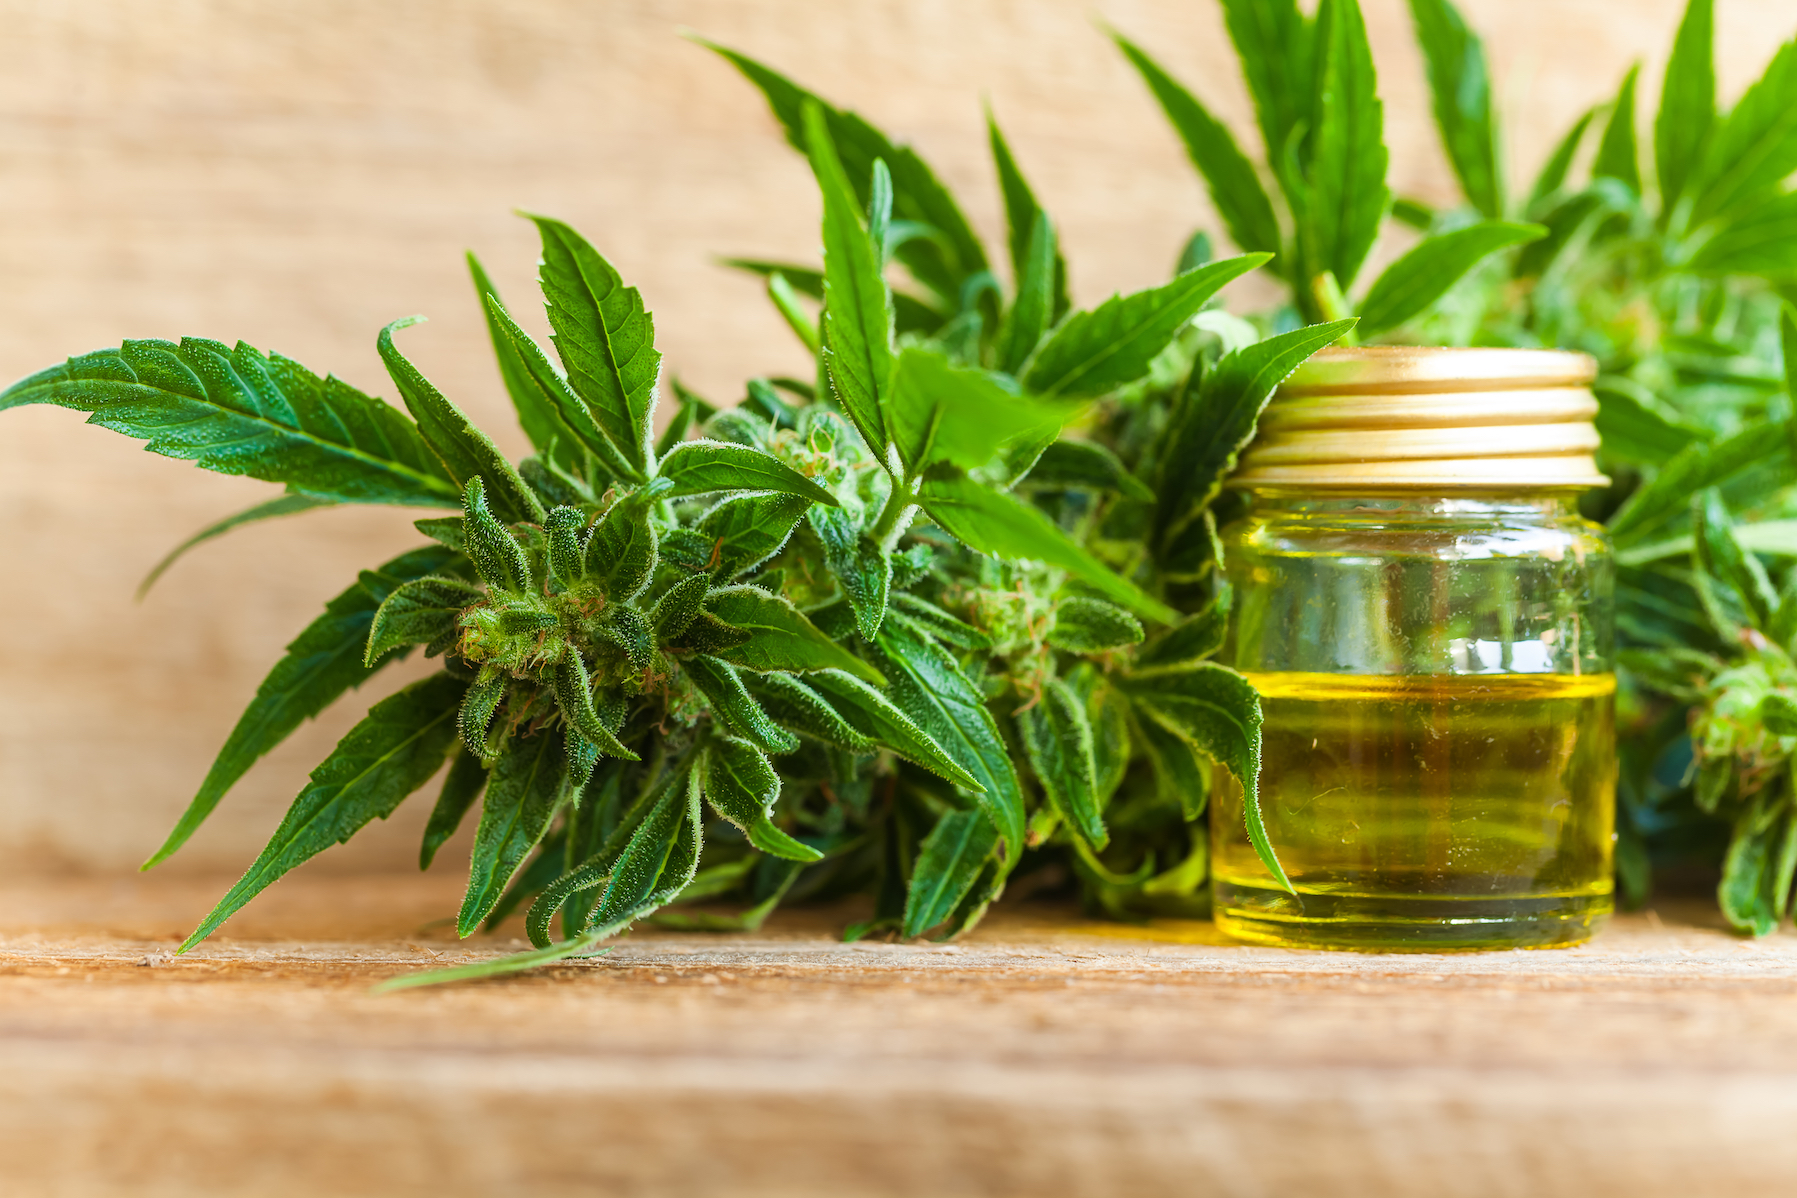 A recent study has found that 70 percent of all cannabidiol products that are sold online are not labeled correctly.